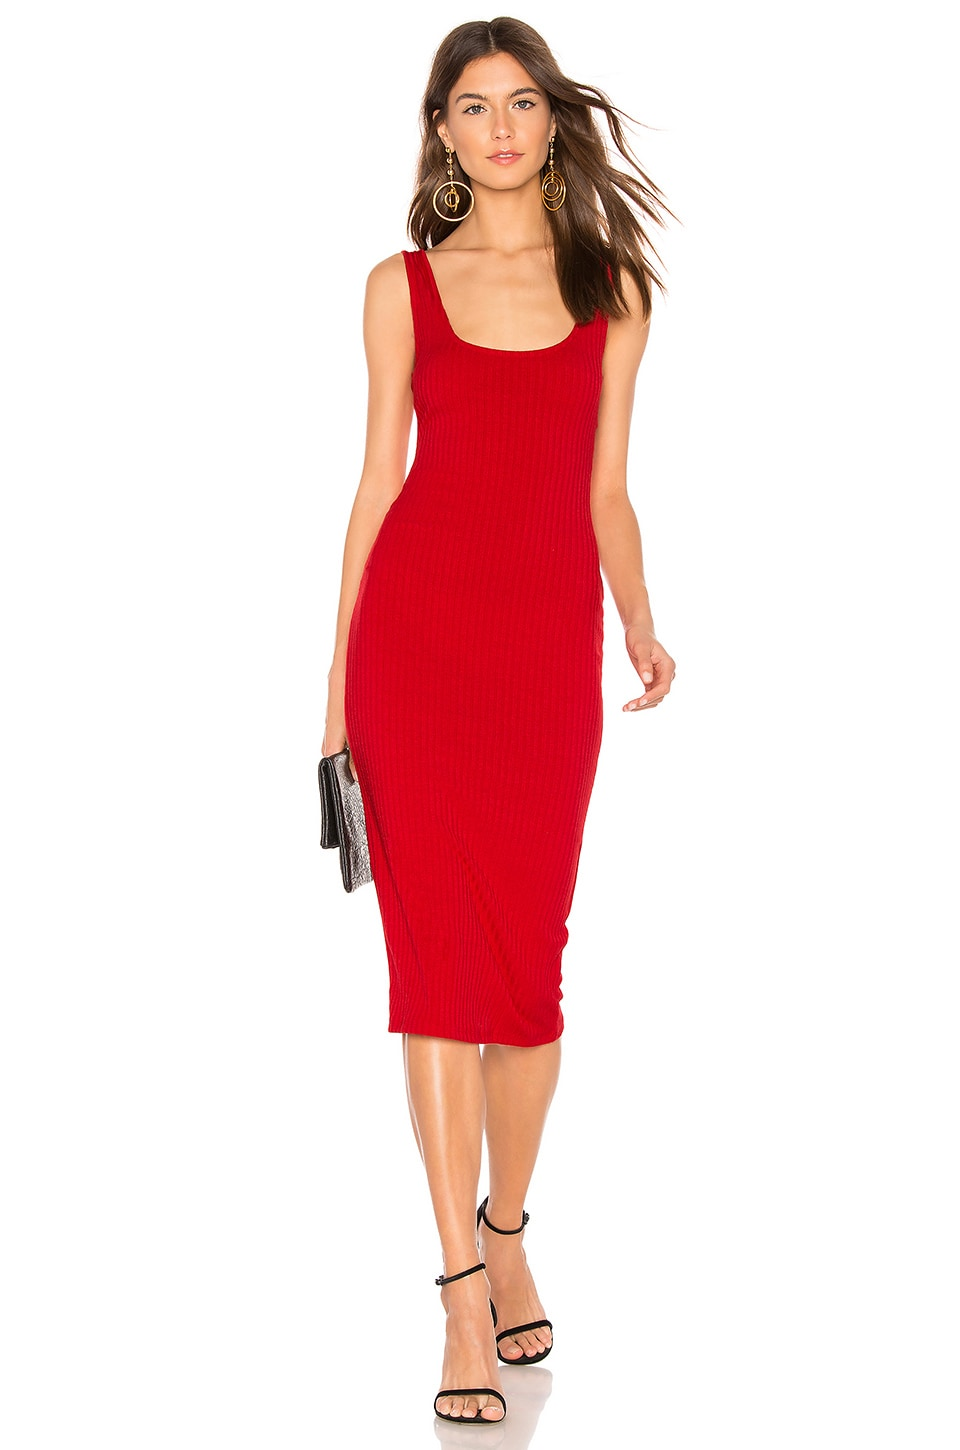 Privacy Please Afton Midi Dress in Red